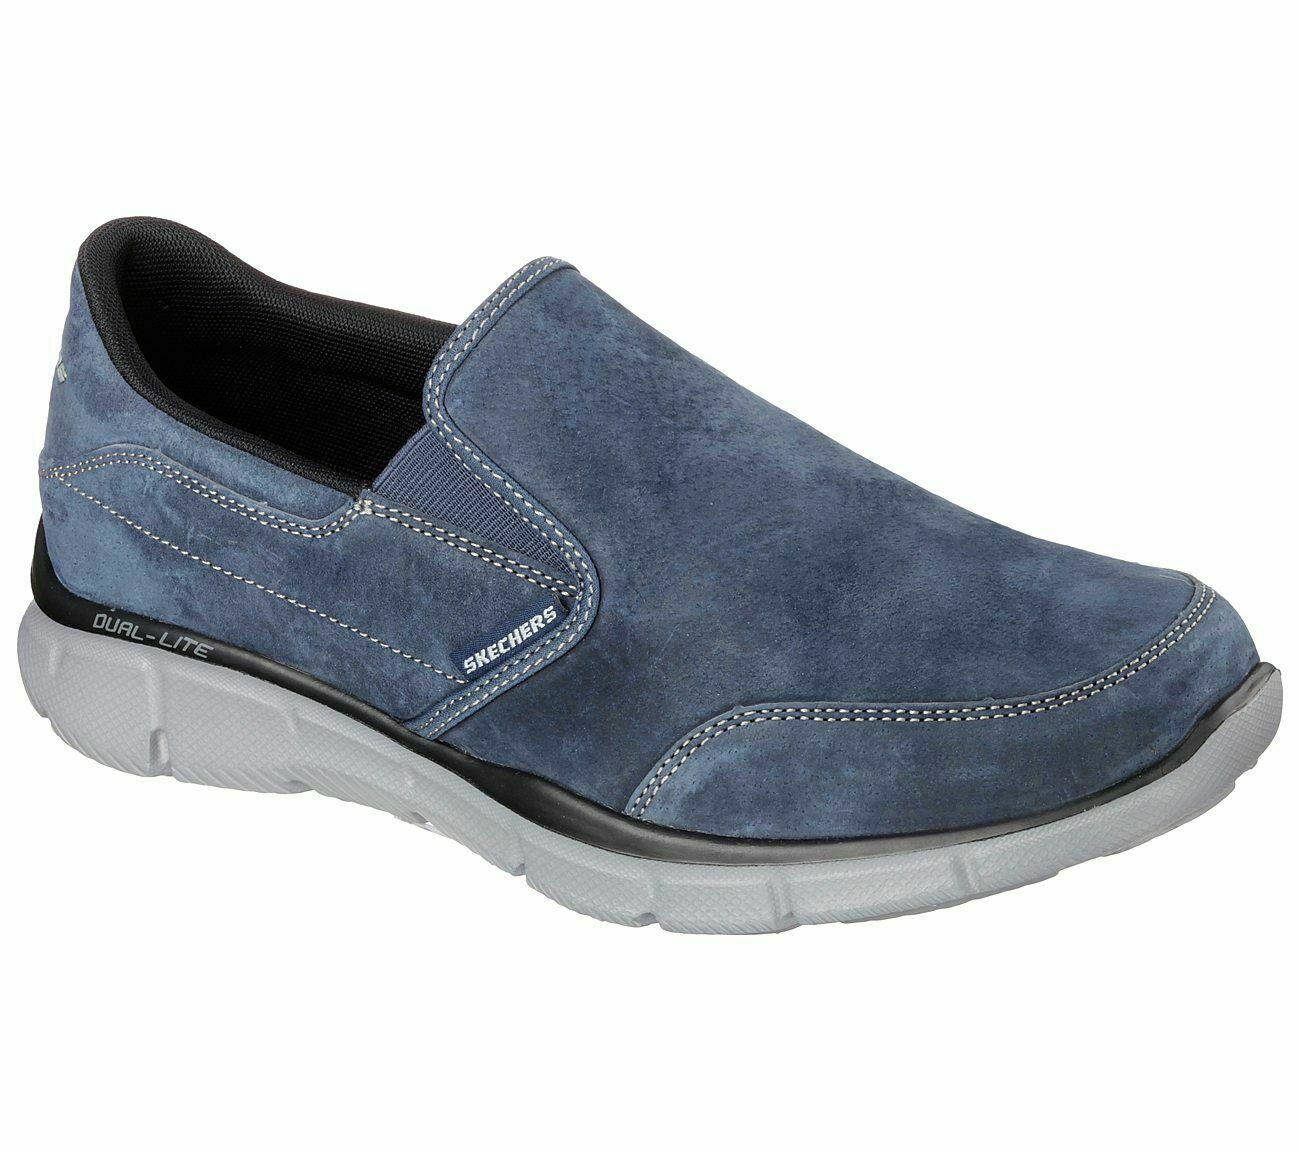 Skechers 51502 Navy Mens Slip On Suede Memory Foam Insole Casual Shoes